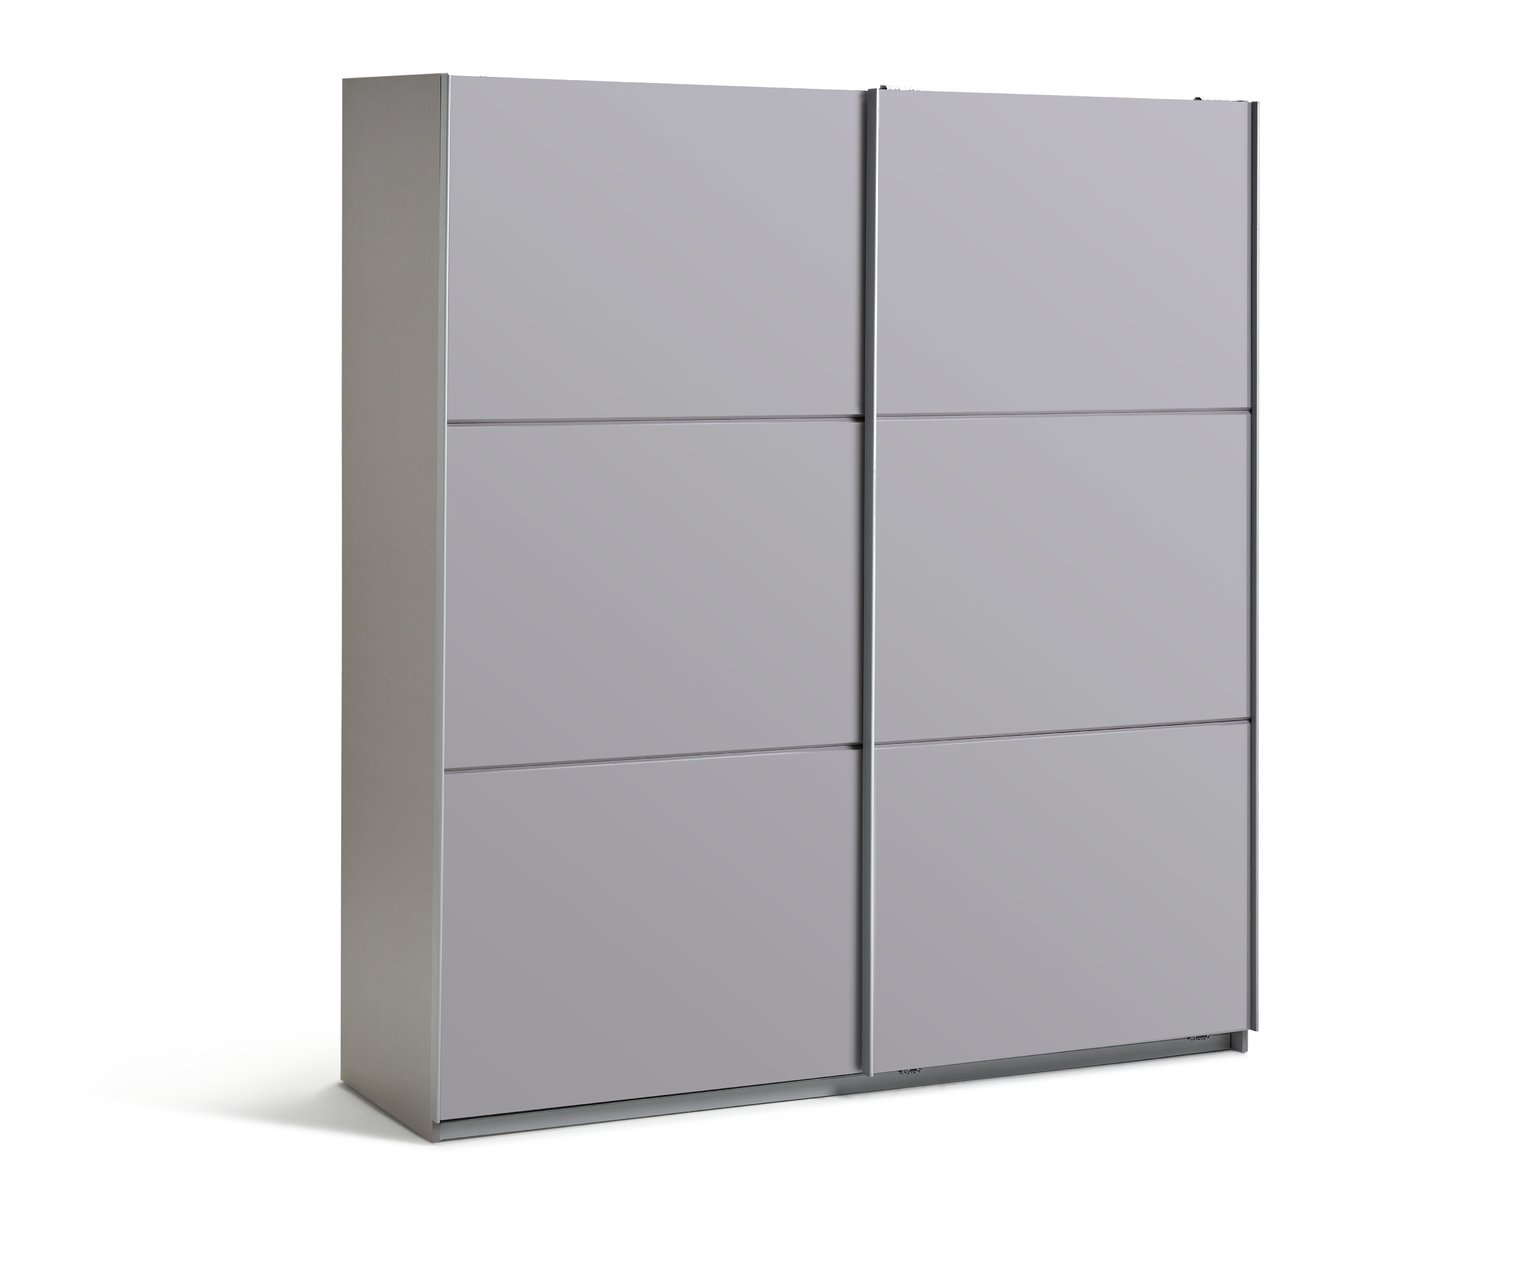 Argos Home Holsted Grey Gloss Large Sliding Wardrobe review